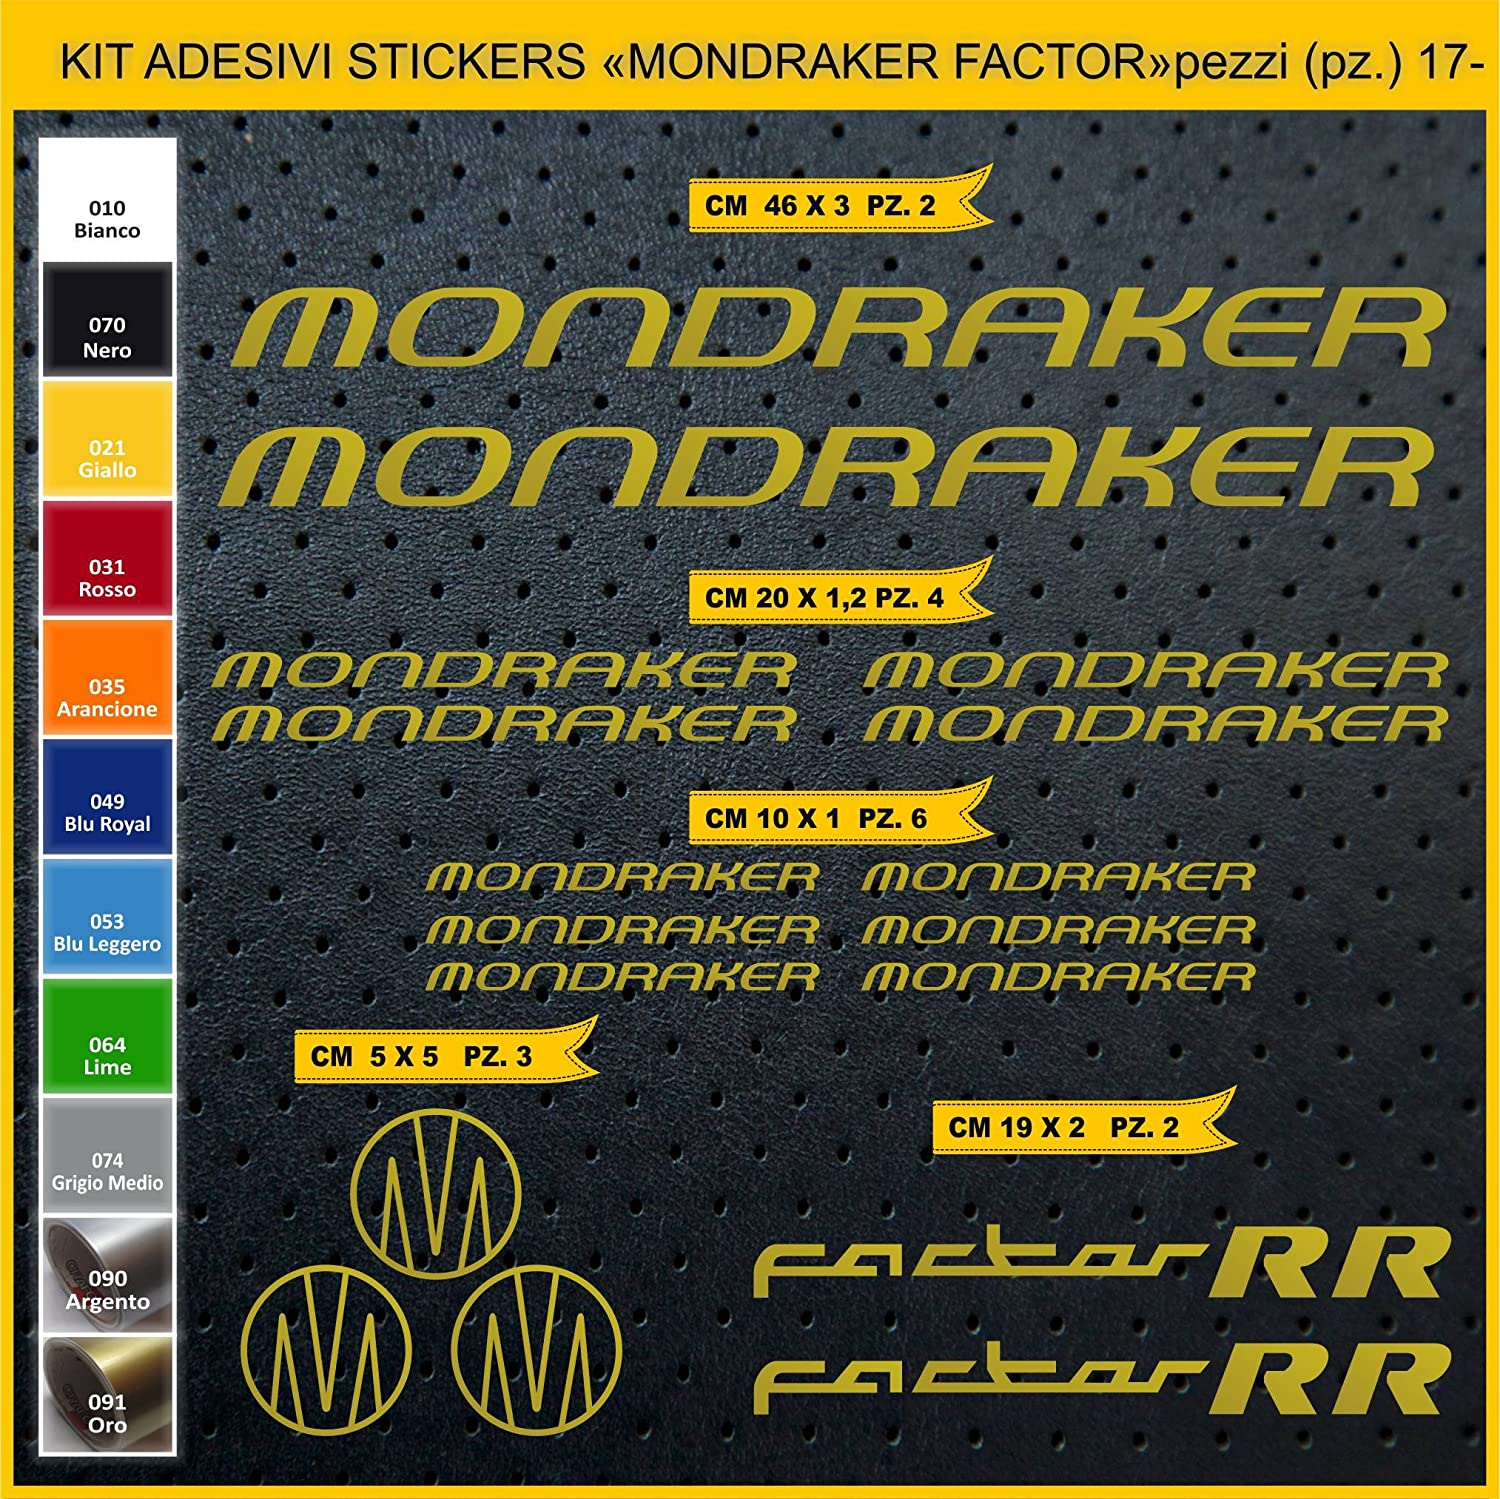 Kit Pegatinas Stickers Bicicleta MONDRAKER Factor RR -Kit 2-17 Piezas- Bike Cycle Cod. 0882 (091 Oro): Amazon.es: Deportes y aire libre